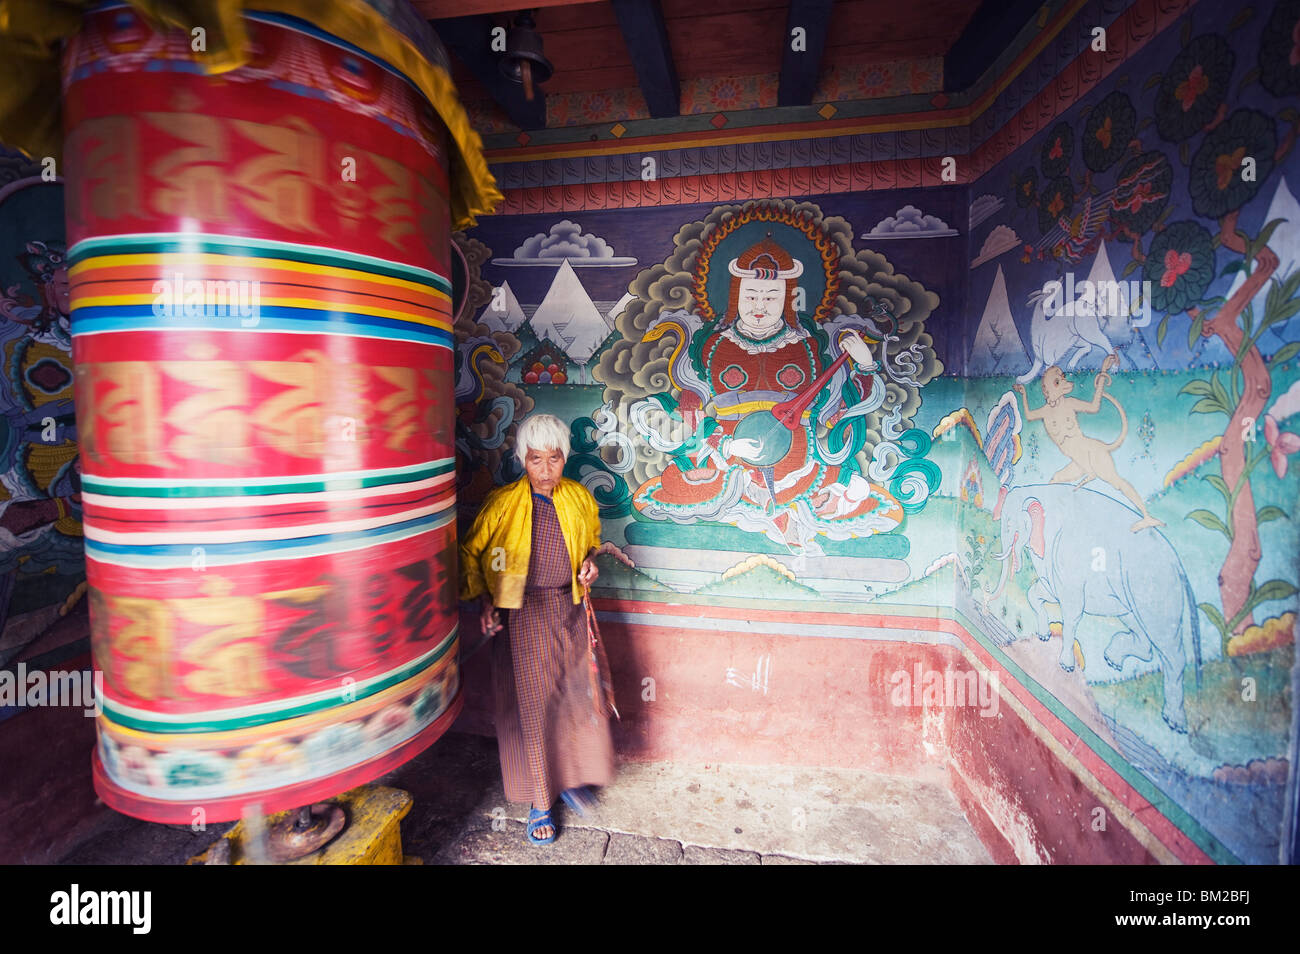 A woman spinning a prayer wheel, Chimi Lhakhang dating from 1499, Temple of the Divine Madman Lama Drukpa Kunley, - Stock Image